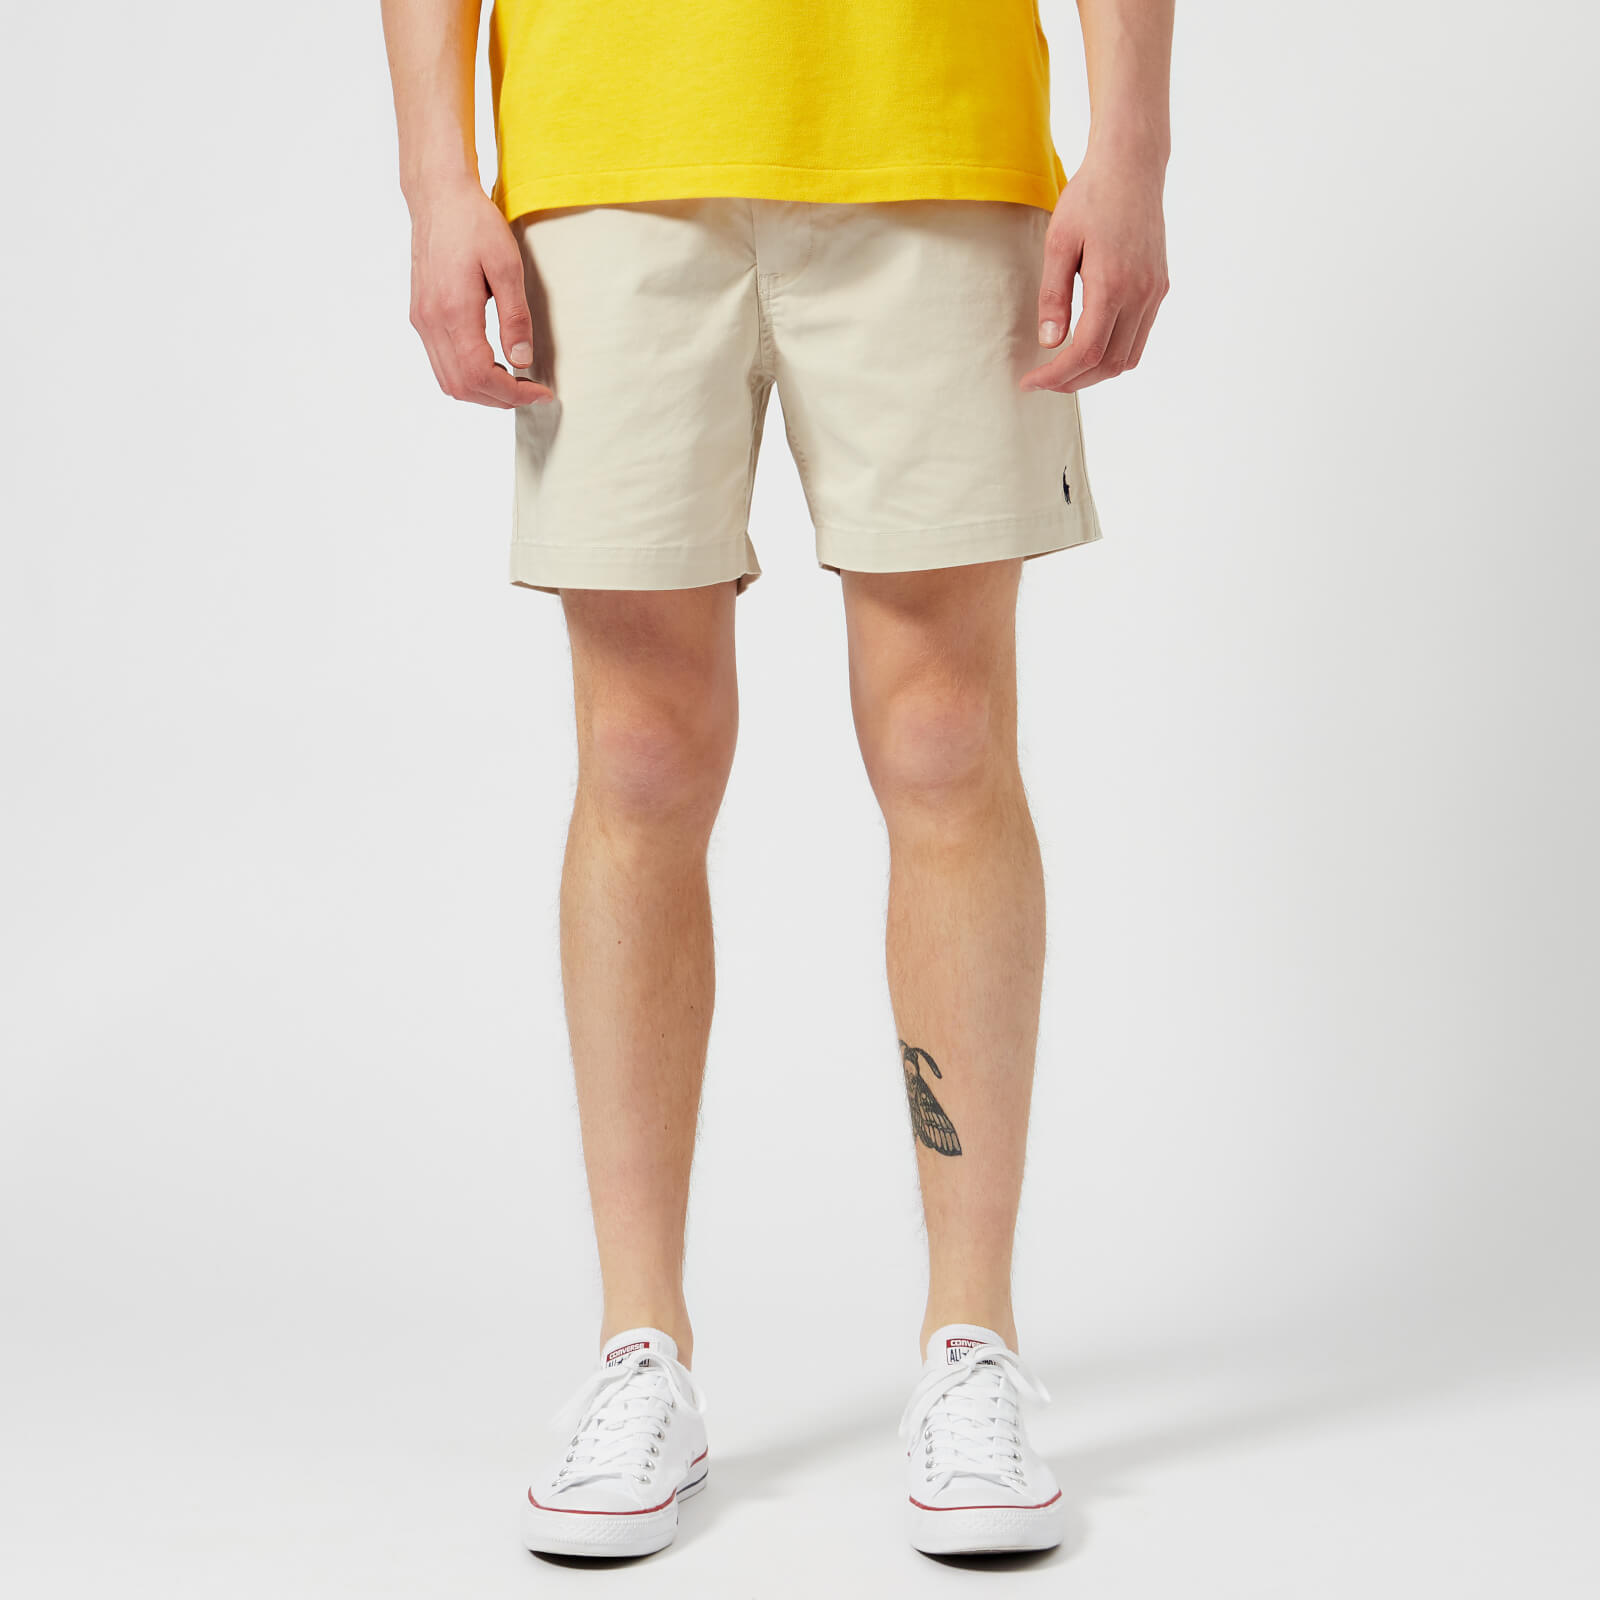 6b3dd6852 Polo Ralph Lauren Men s Prepster Shorts - New Sand - Free UK Delivery over £ 50